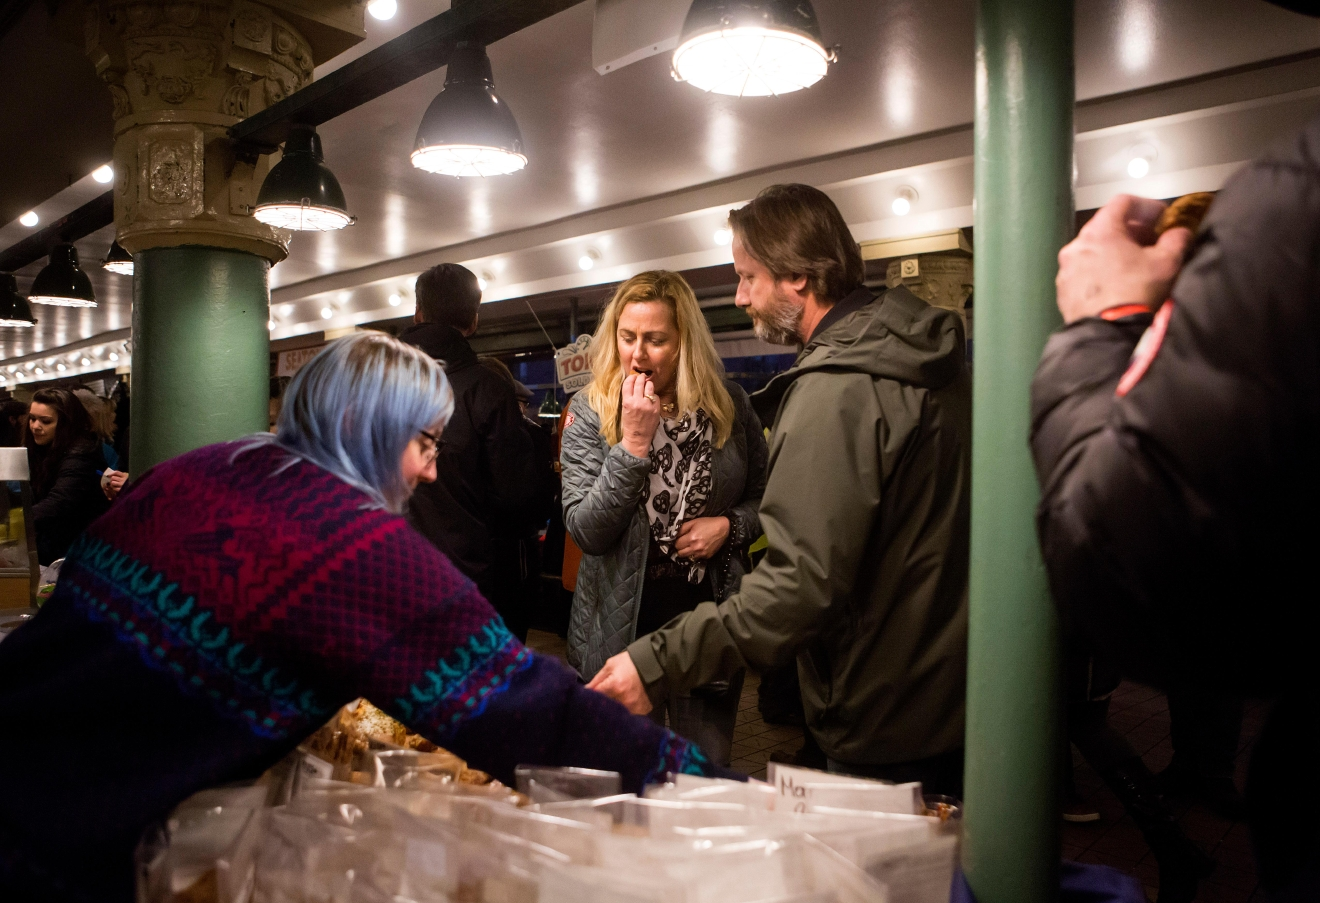 Arcade Lights at Pike Place Market is an artisan food, craft beer, cider and cocktail tasting event, with over 1,000 attendees and over 70 vendors. Proceeds from Arcade Lights benefit seniors and families in Pike Place Market. (Sy Bean / Seattle Refined)